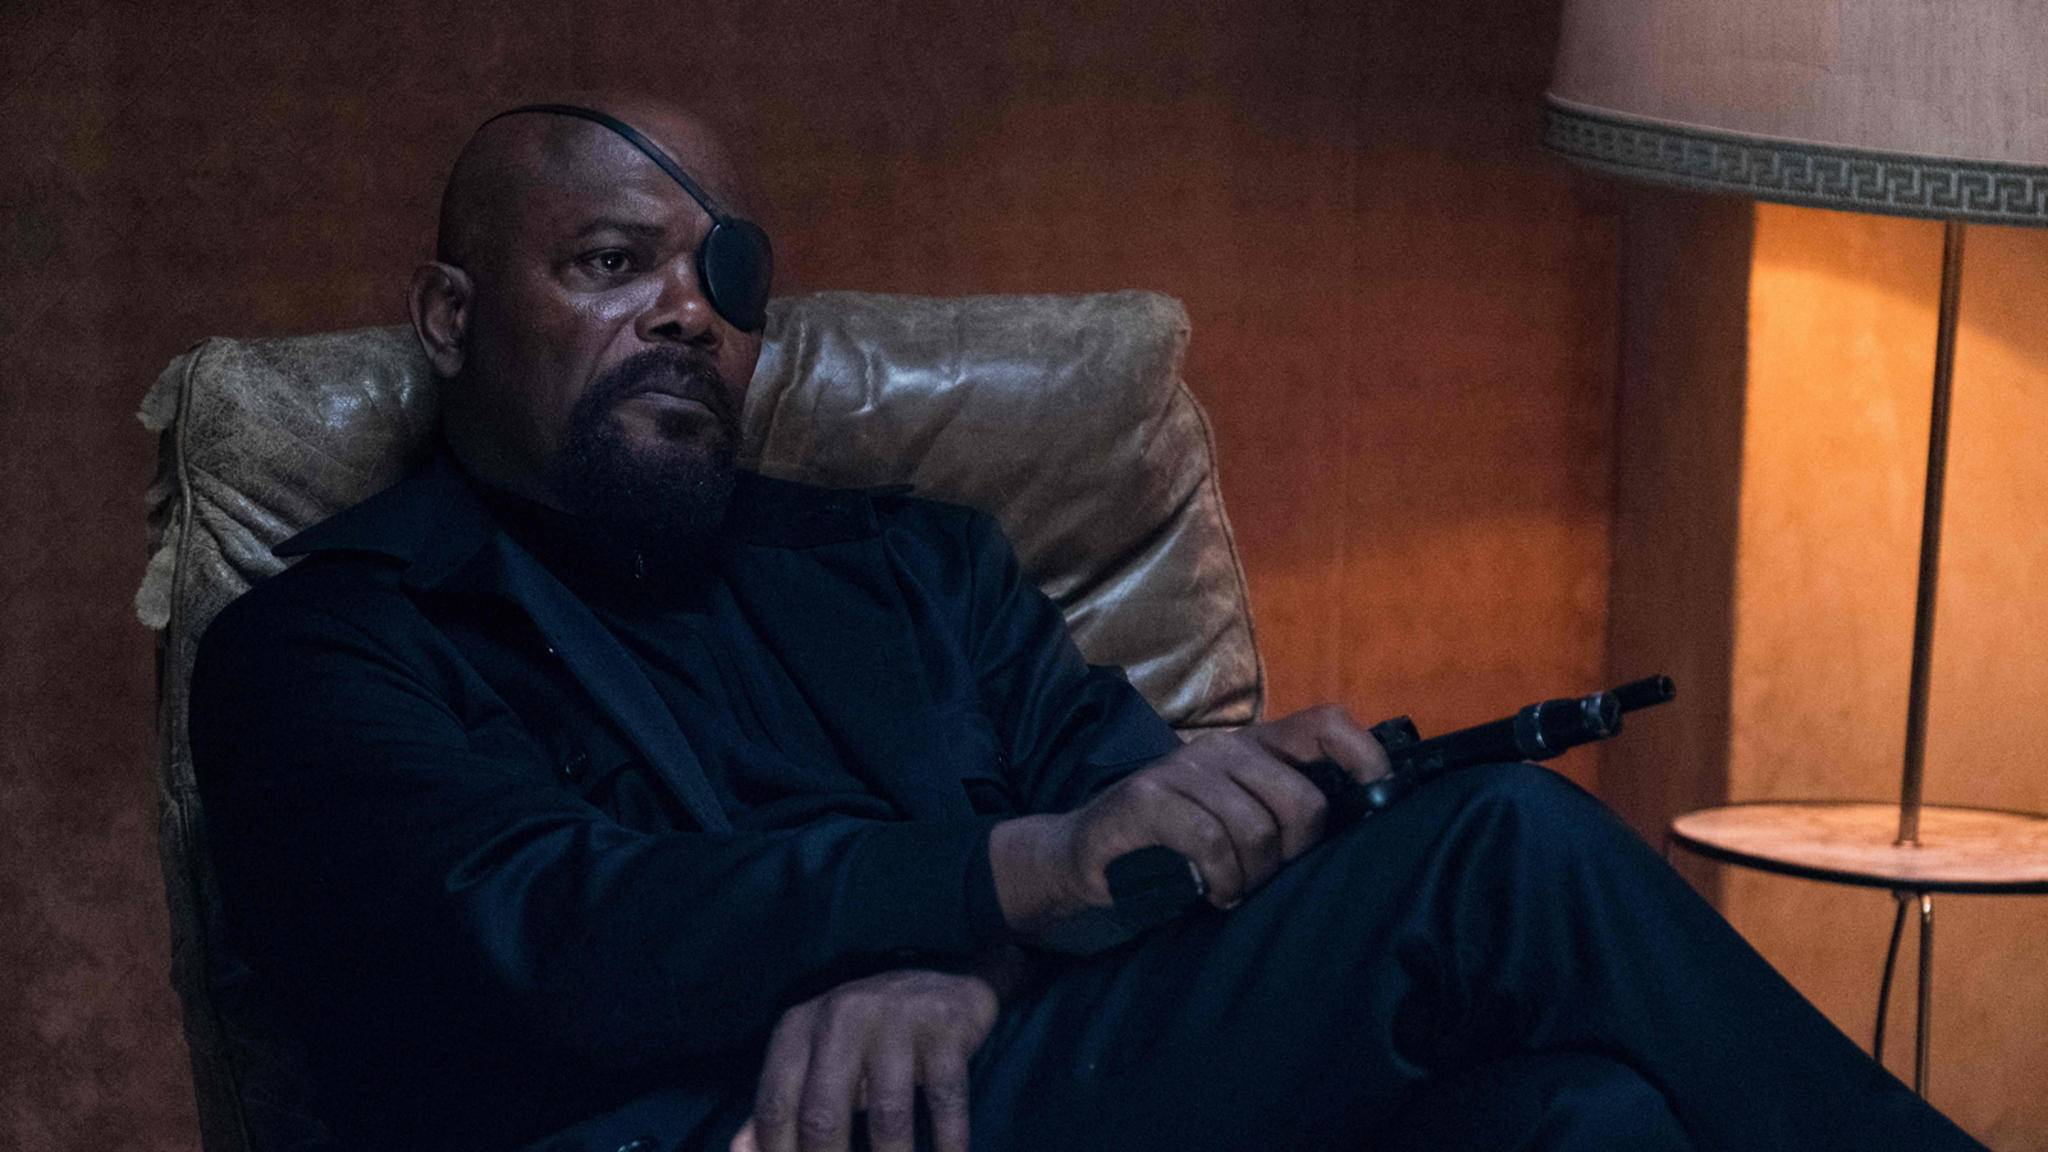 Samuel L Jackson Nick Fury Spider-Man: Far From Home